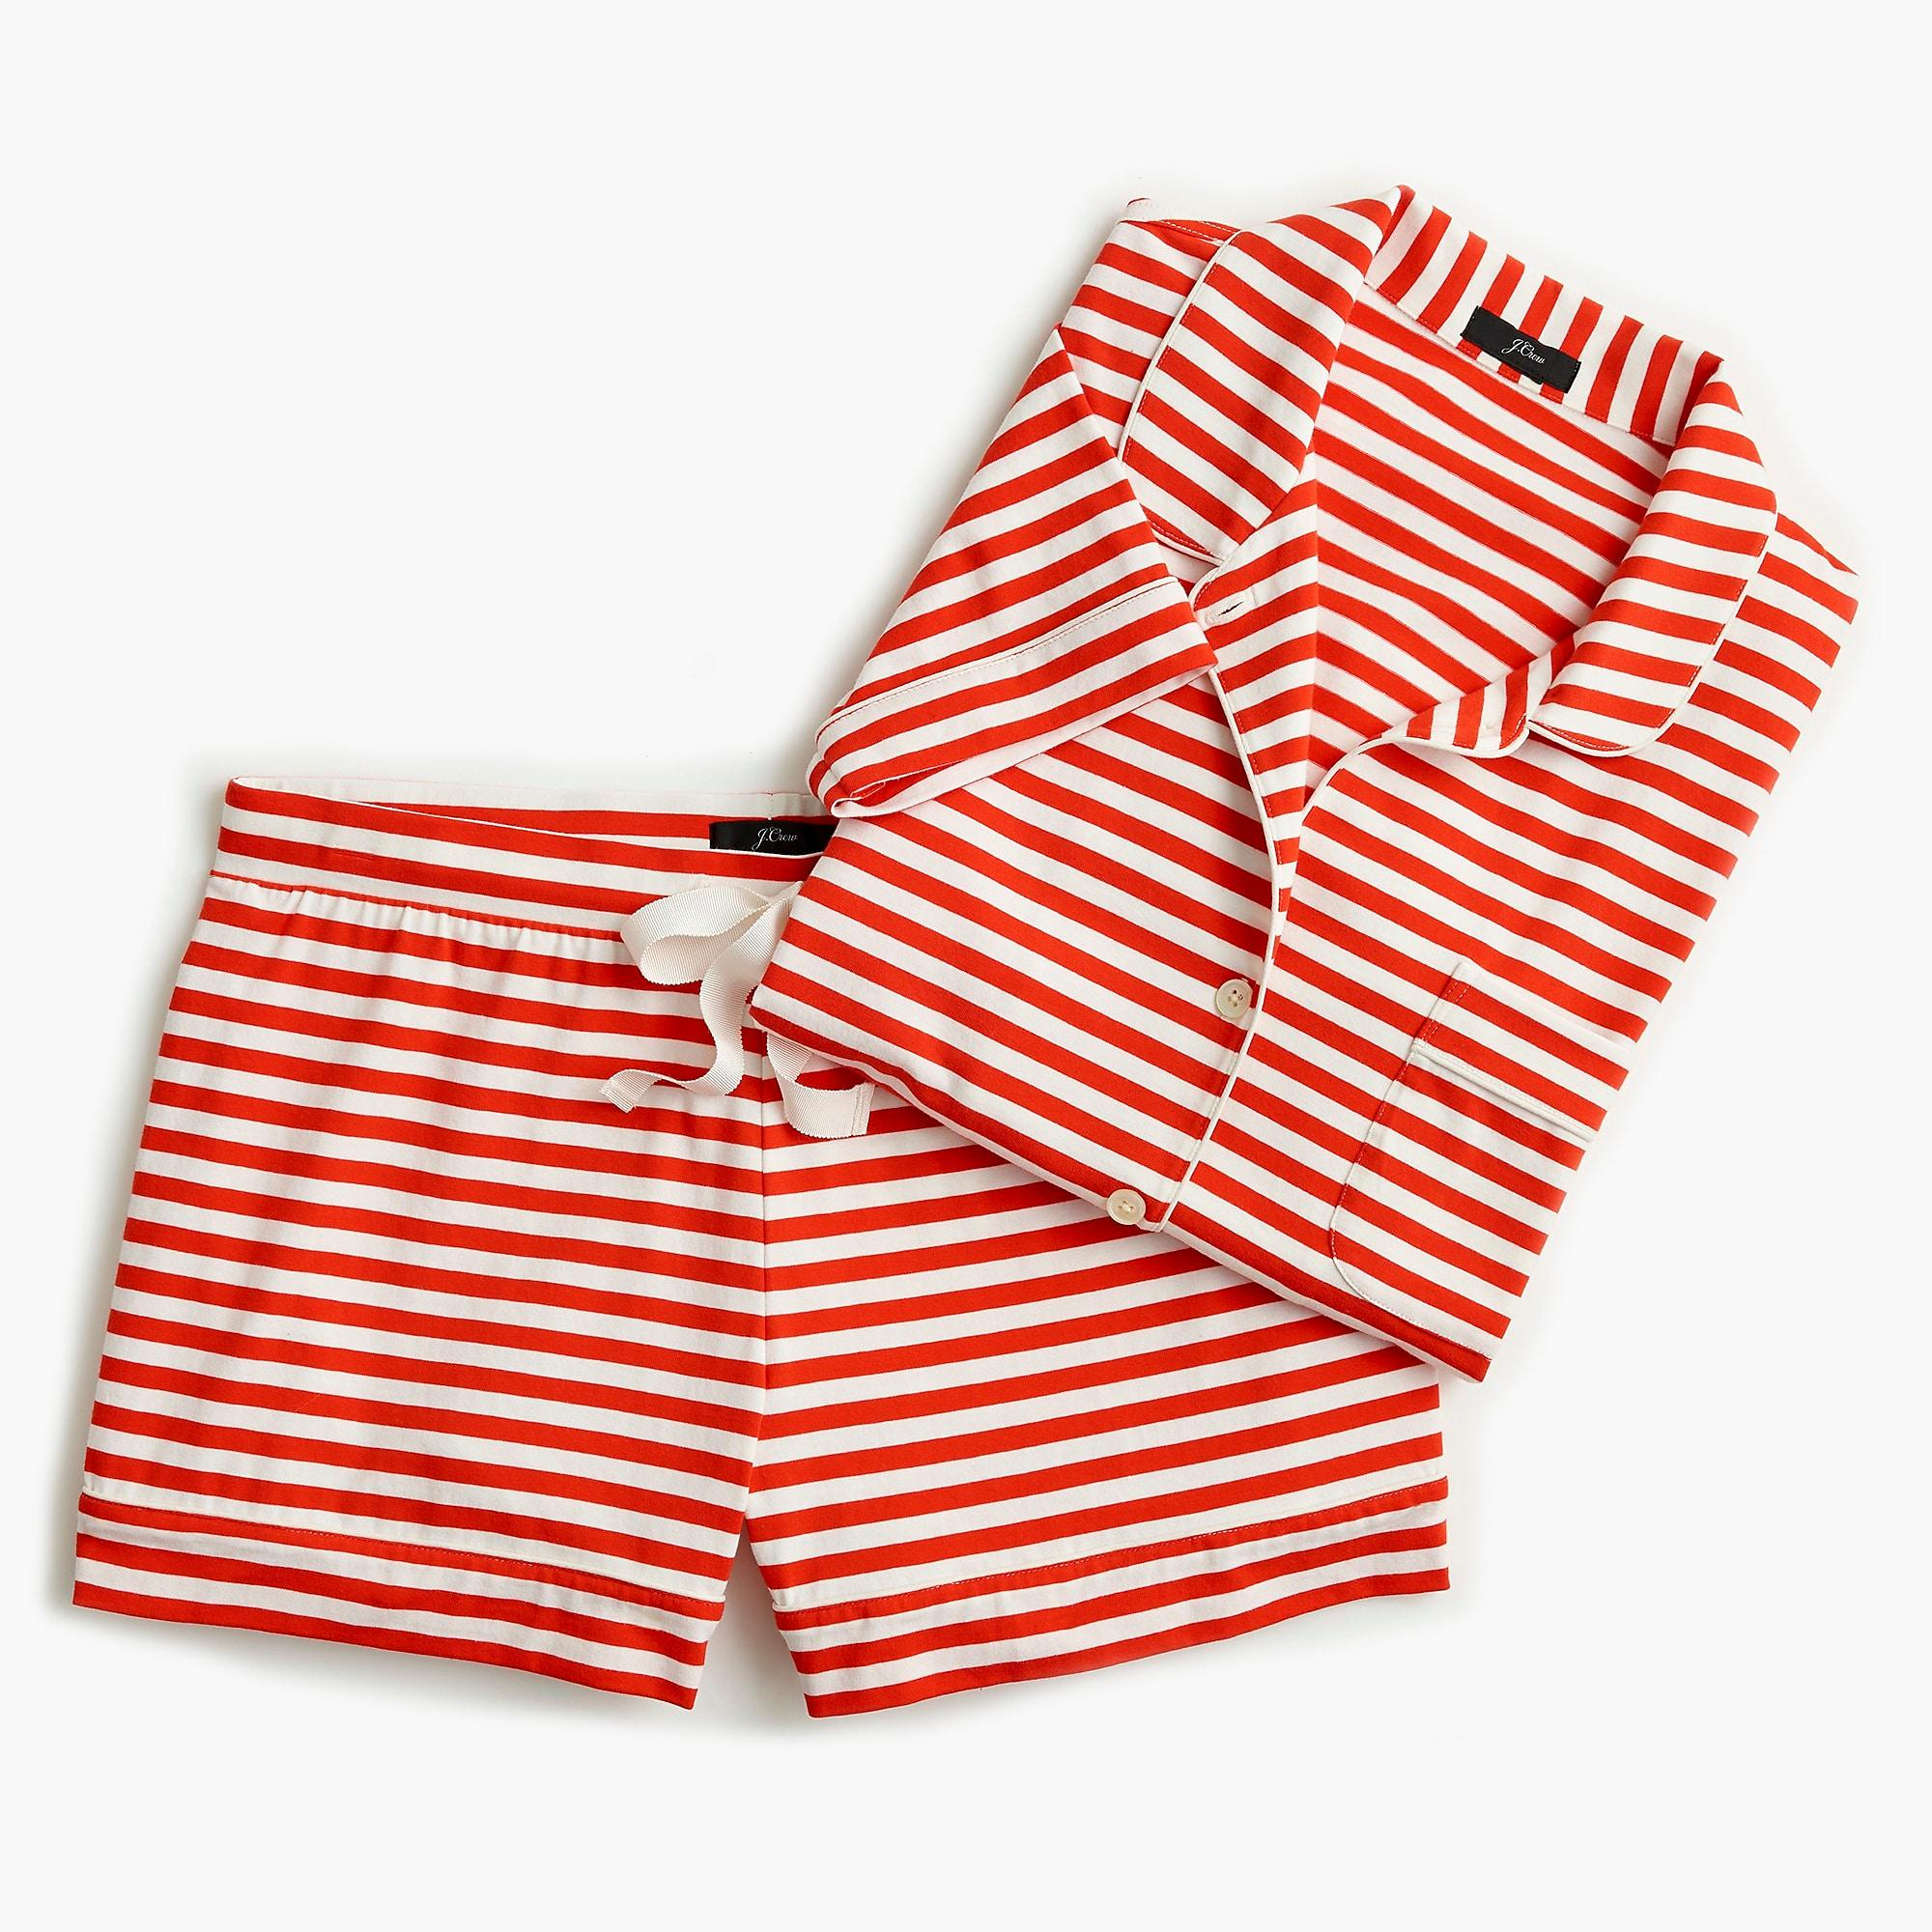 74bd0209e J.Crew Dreamy Short-sleeve Cotton Pajama Set In Stripe in Red - Lyst